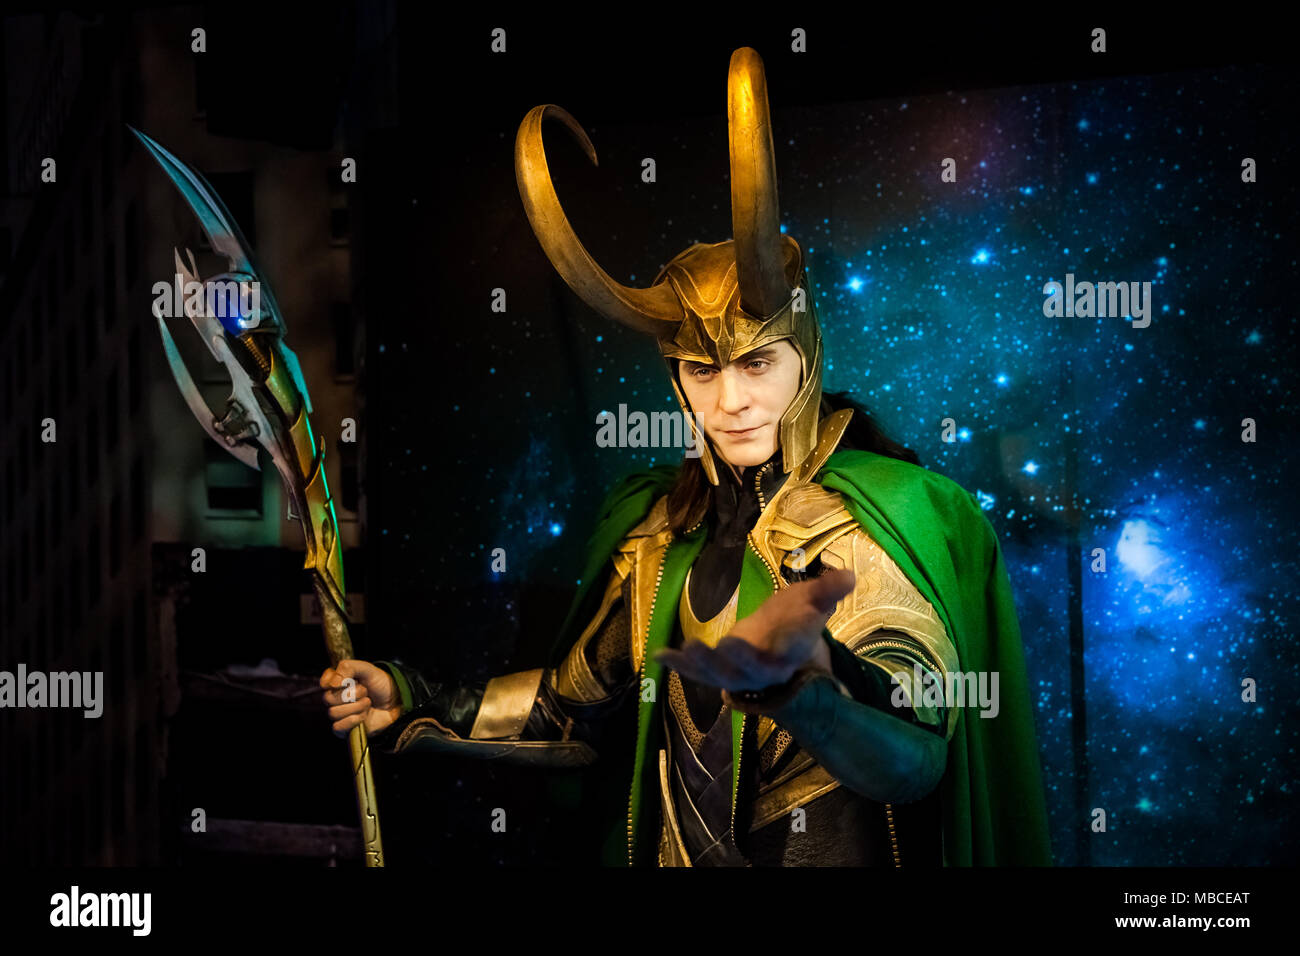 Wax figure of Loki fictional character from American comic books in Madame Tussauds Wax museum in Amsterdam, Netherlands Stock Photo